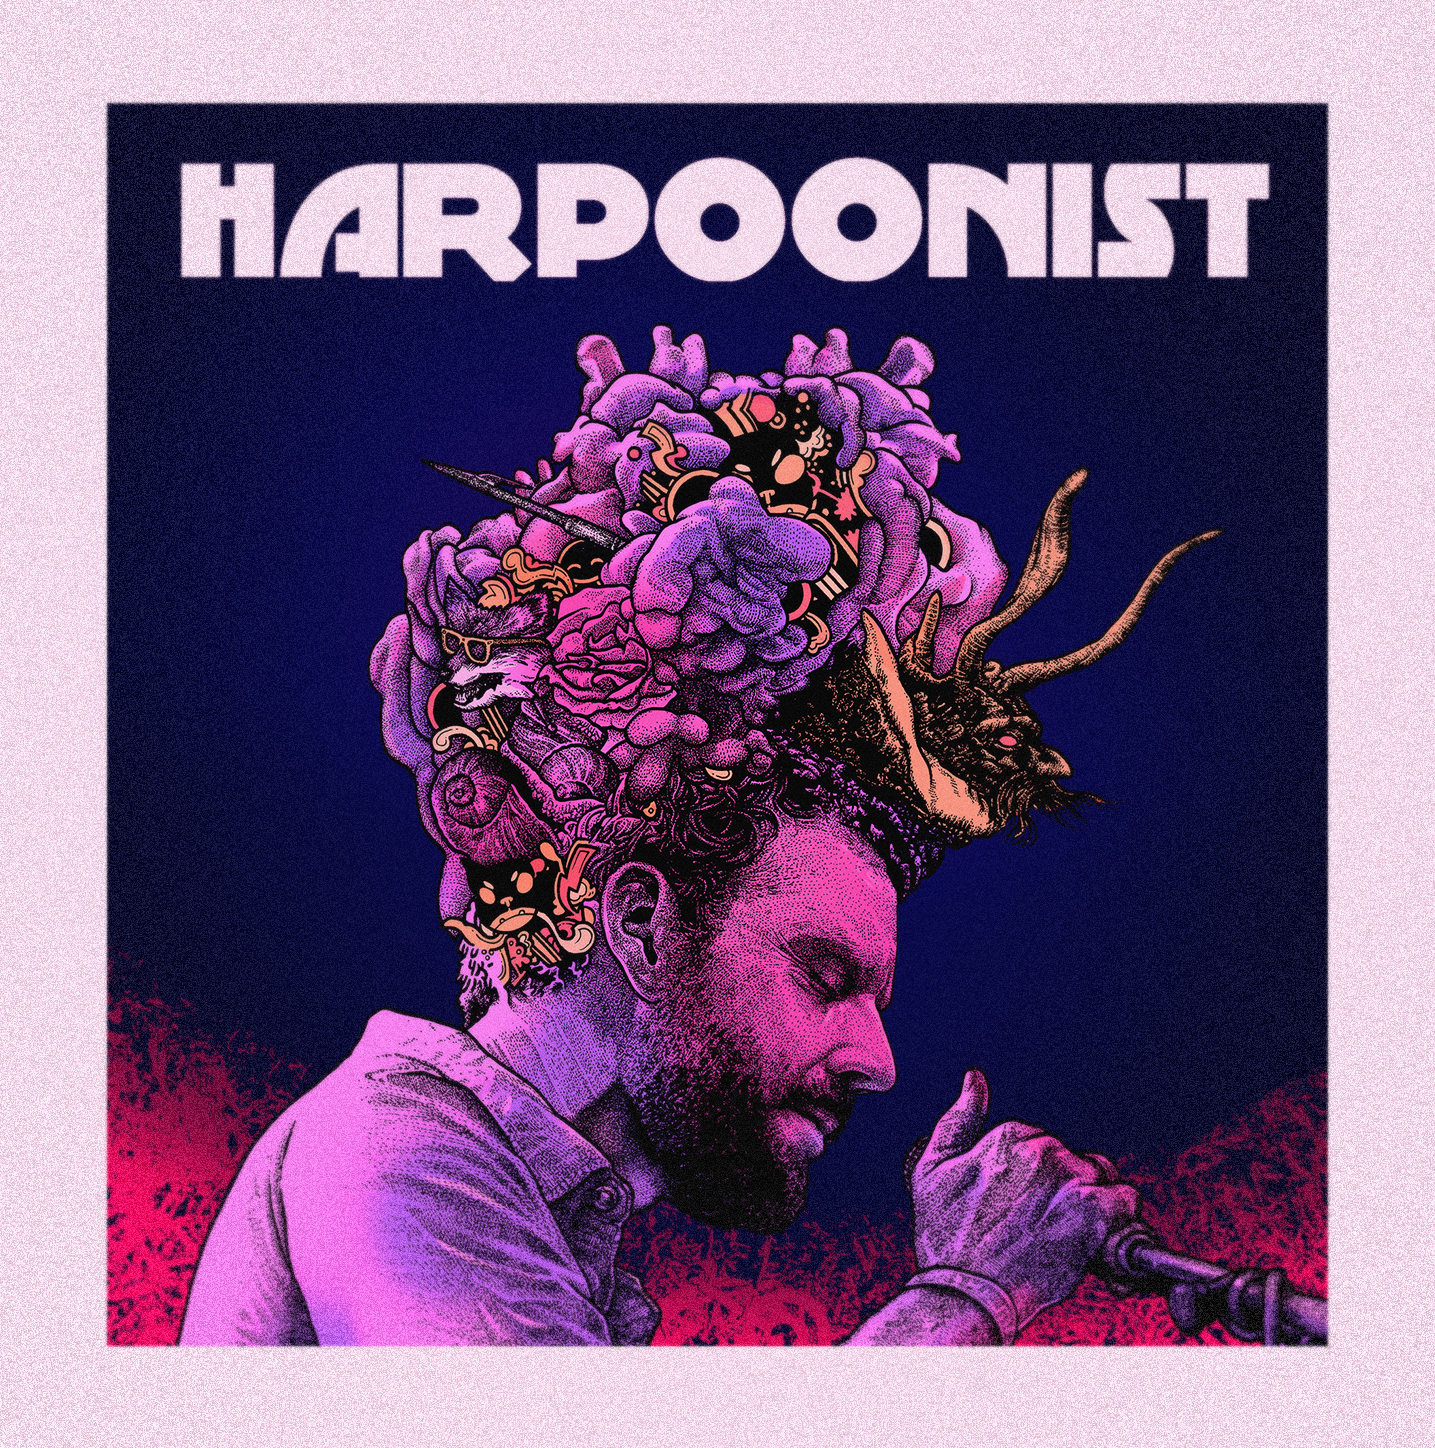 HARPOONIST - Traditional 2D and digital color